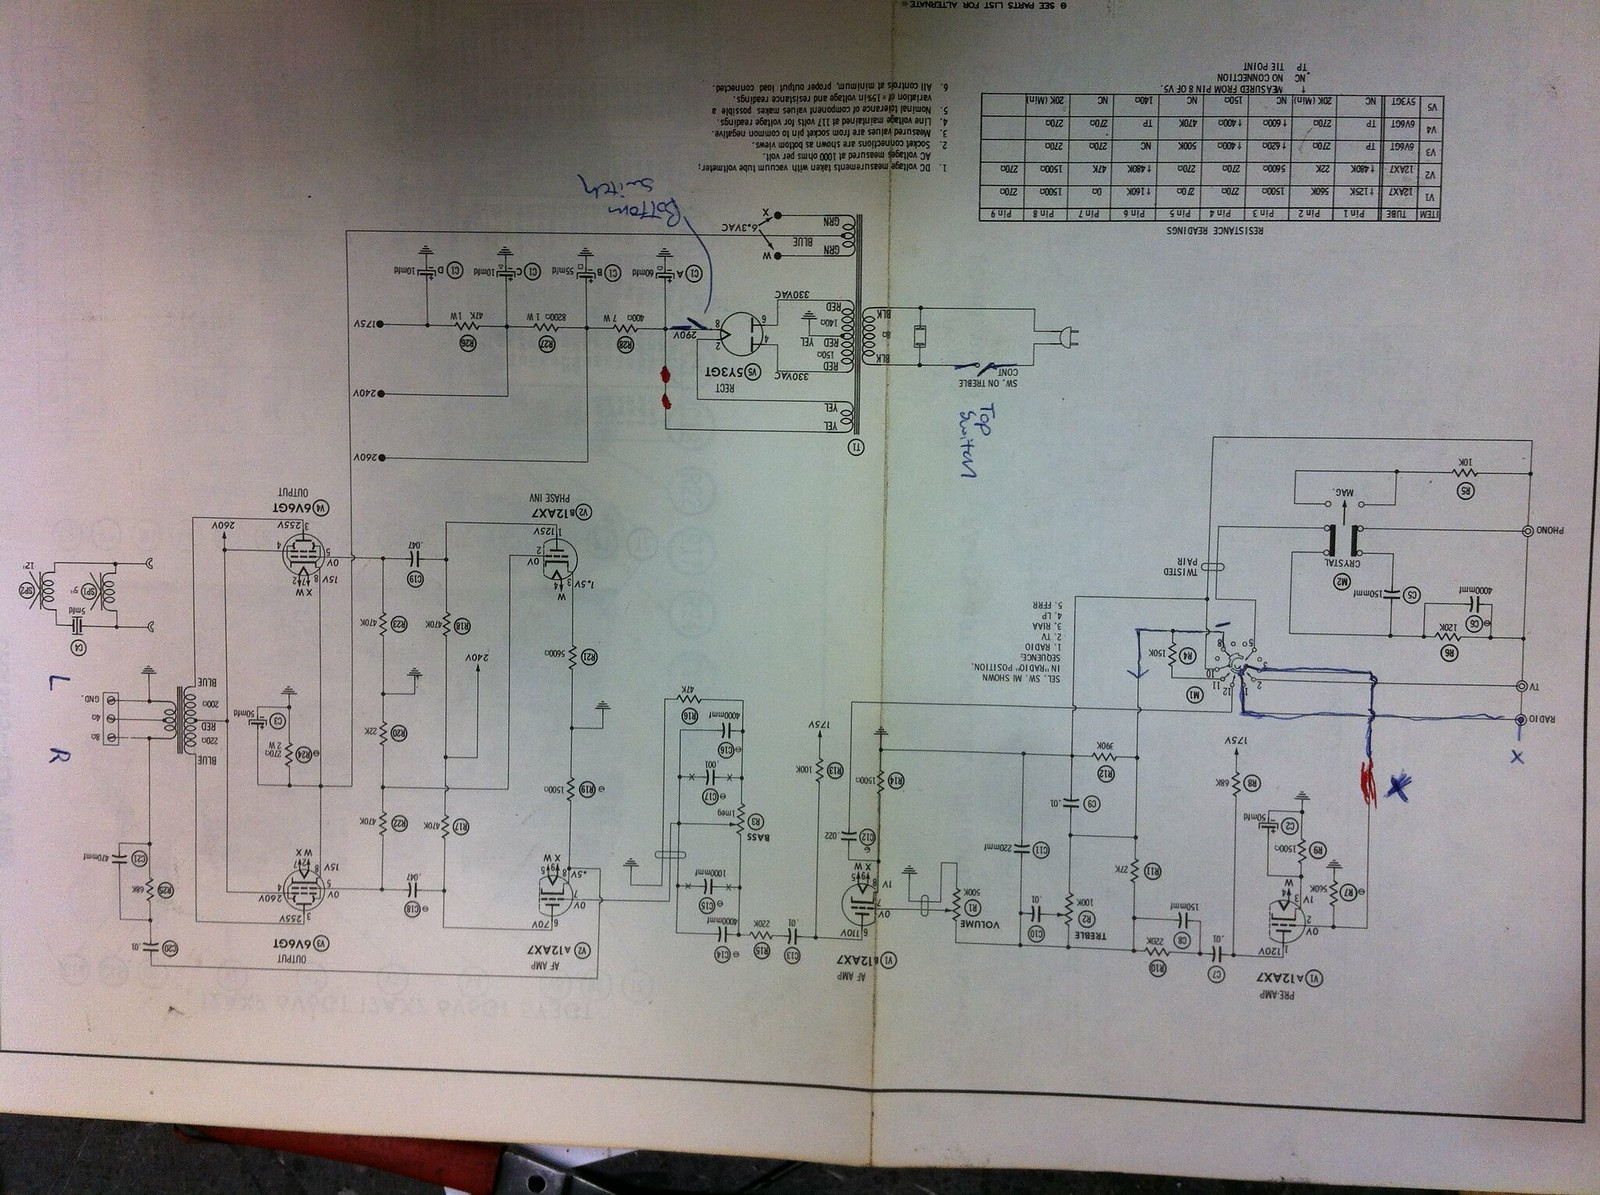 Whitley Pa Guitar Conversion Diyaudio I M506 Wiring Diagram Click The Image To Open In Full Size